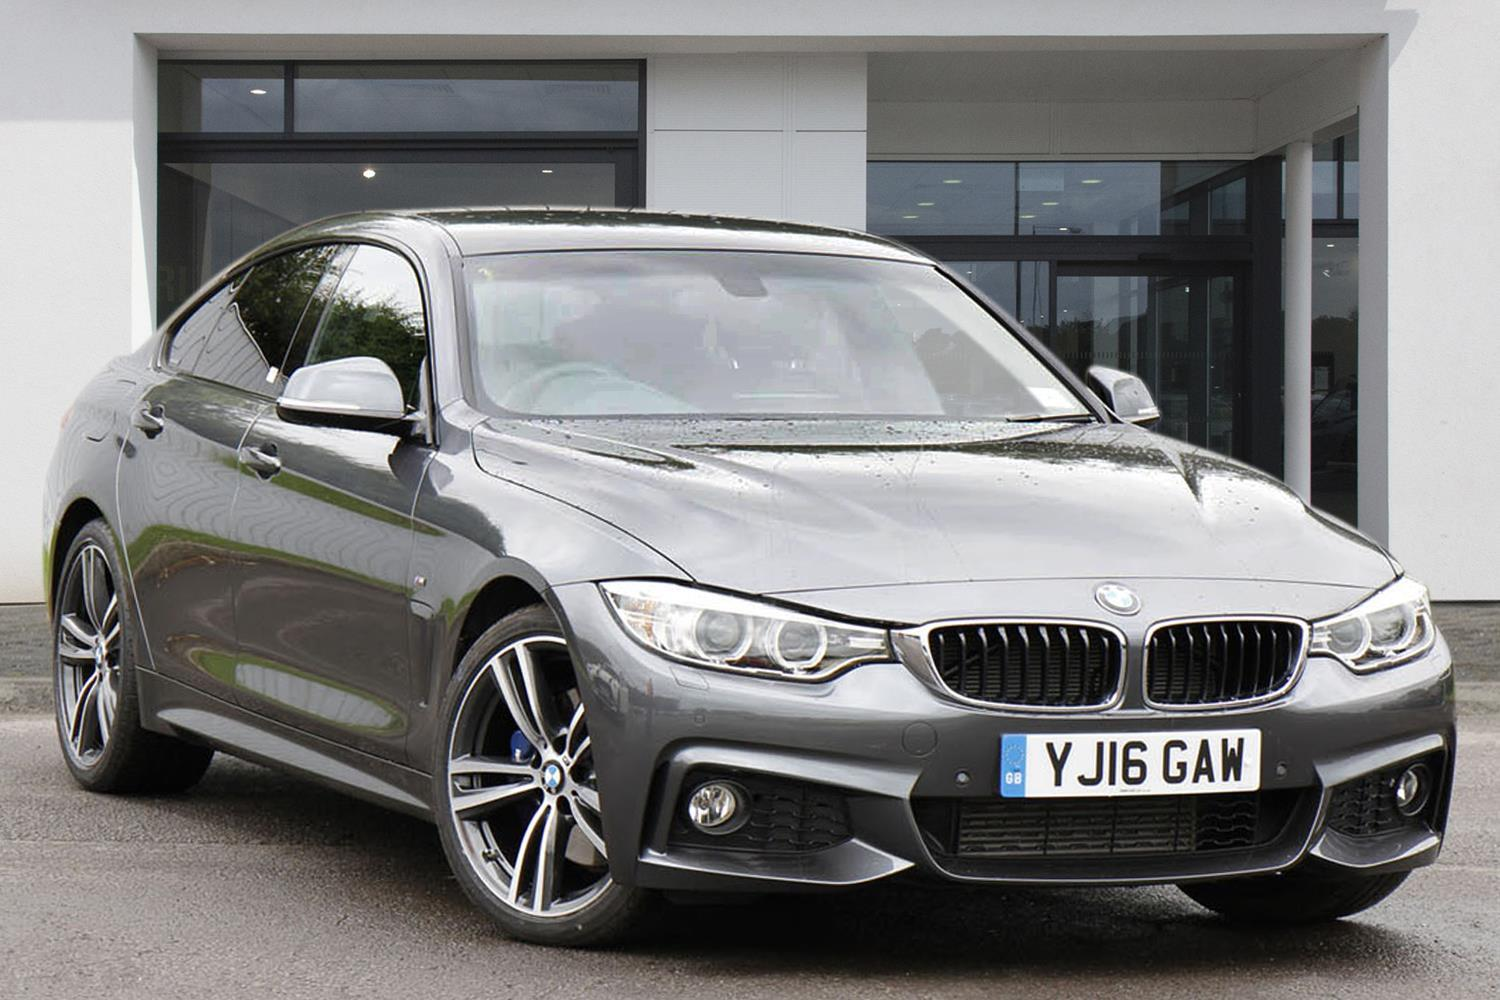 BMW 4 Series Gran Coupé YJ16GAW - Image 3